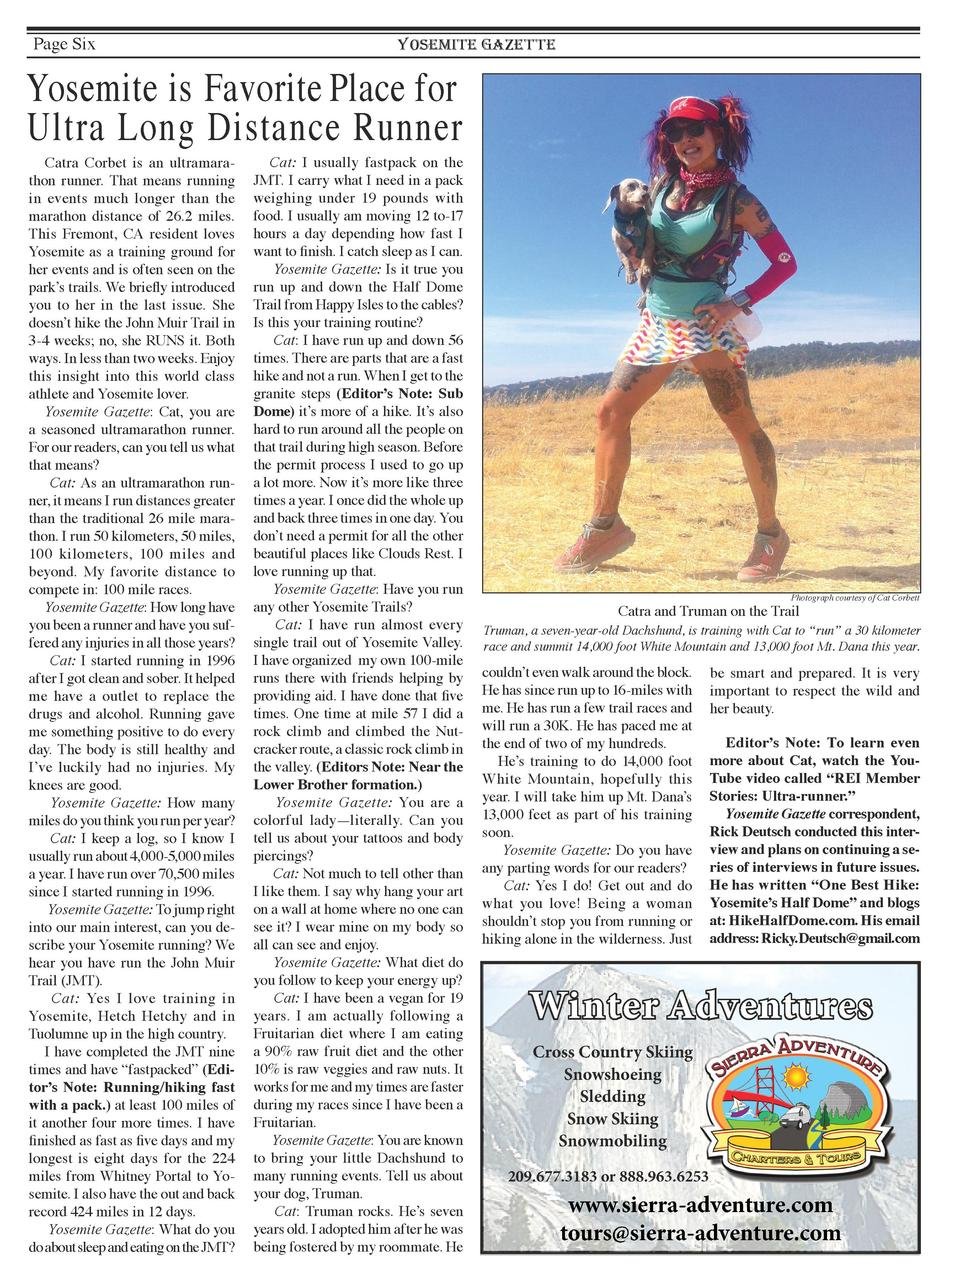 Page Six  YOSEMITE GAZETTE  Yosemite is Favorite Place for Ultra Long Distance Runner Catra Corbet is an ultramarathon run...